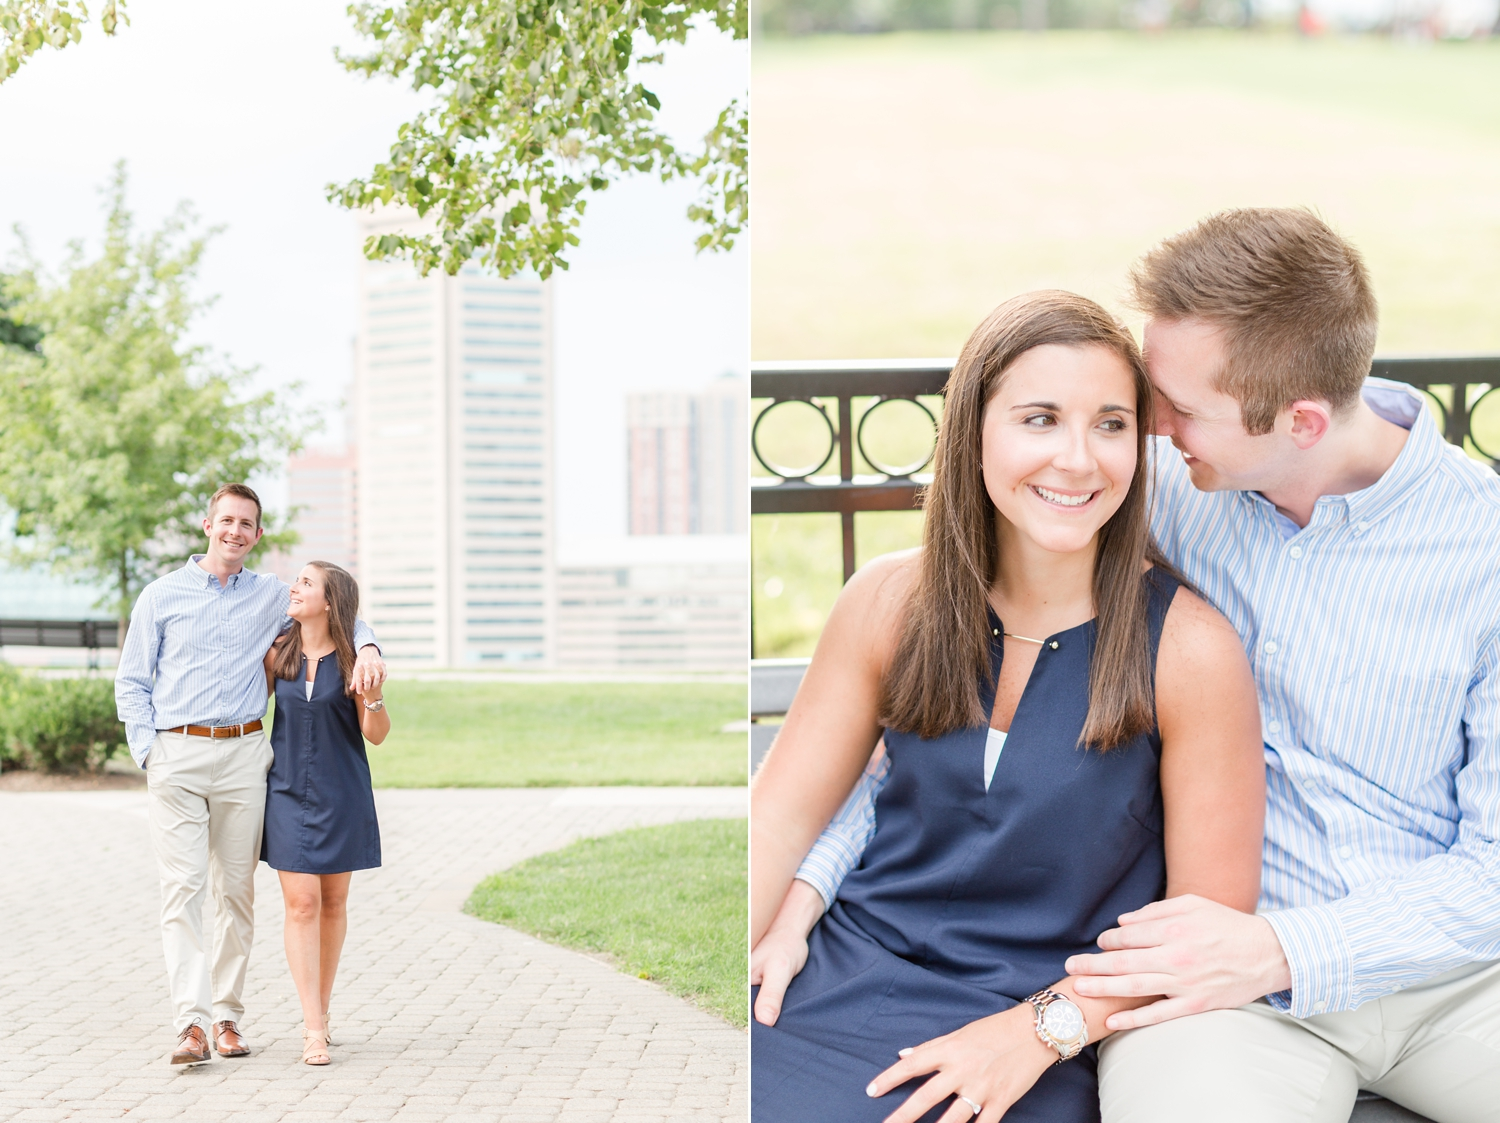 Jamie Wood & Daniel Schindler Engagement-72_Downtown-Baltimore-Maryland-engagement-photographer-anna-grace-photography-photo.jpg